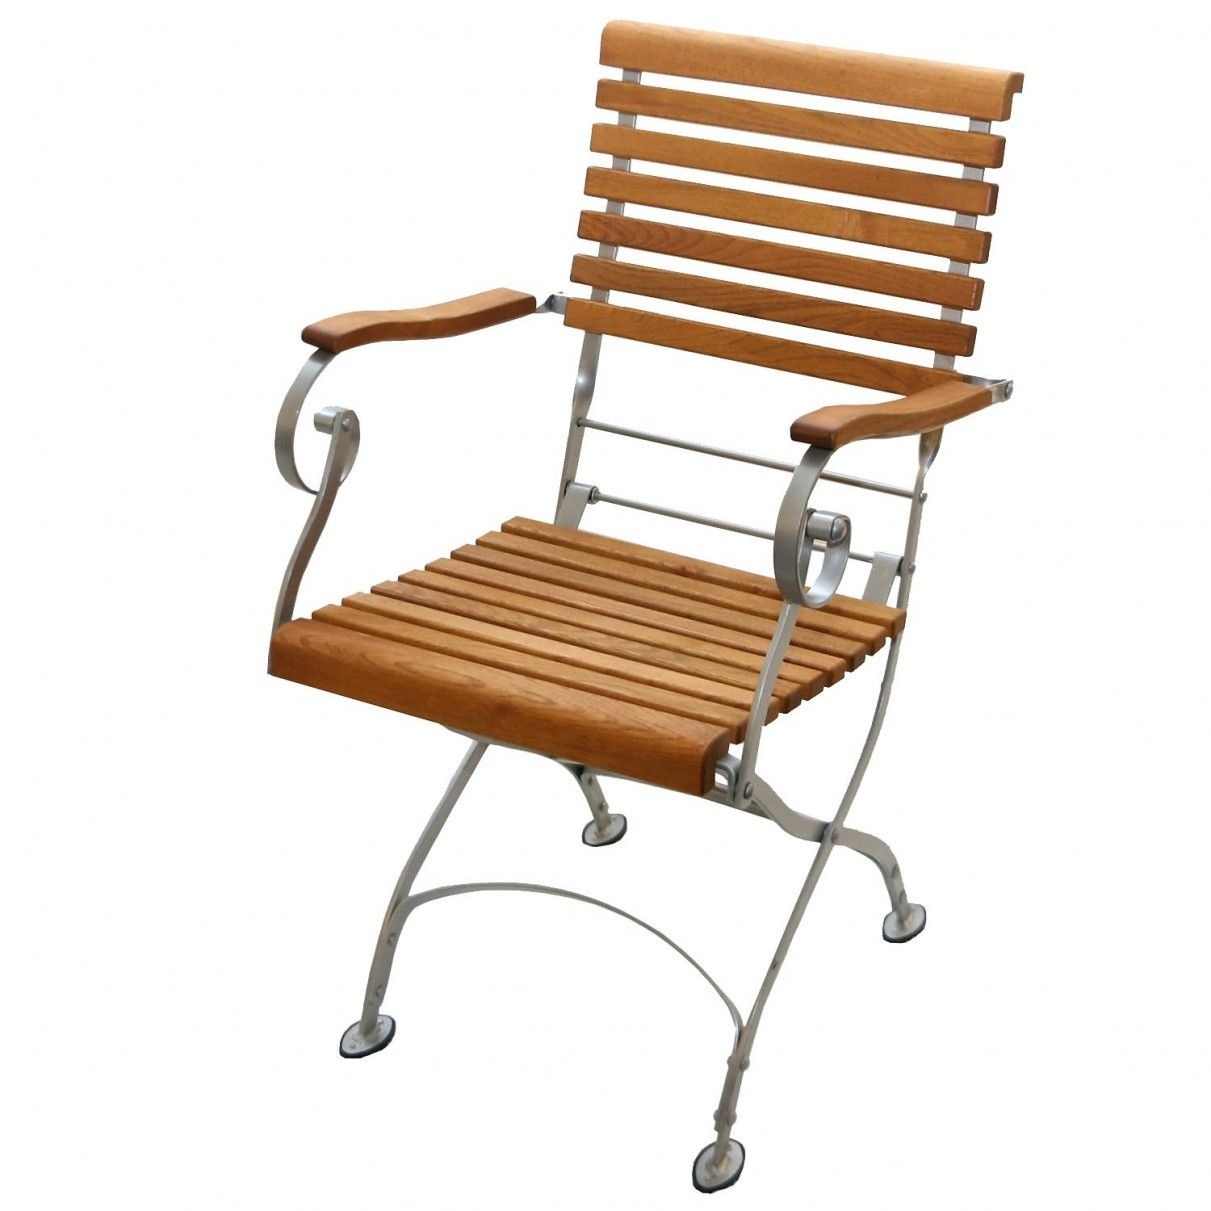 Merveilleux Versalite Folding Arm Chair   Custom Home Office Furniture Check More At  Http://